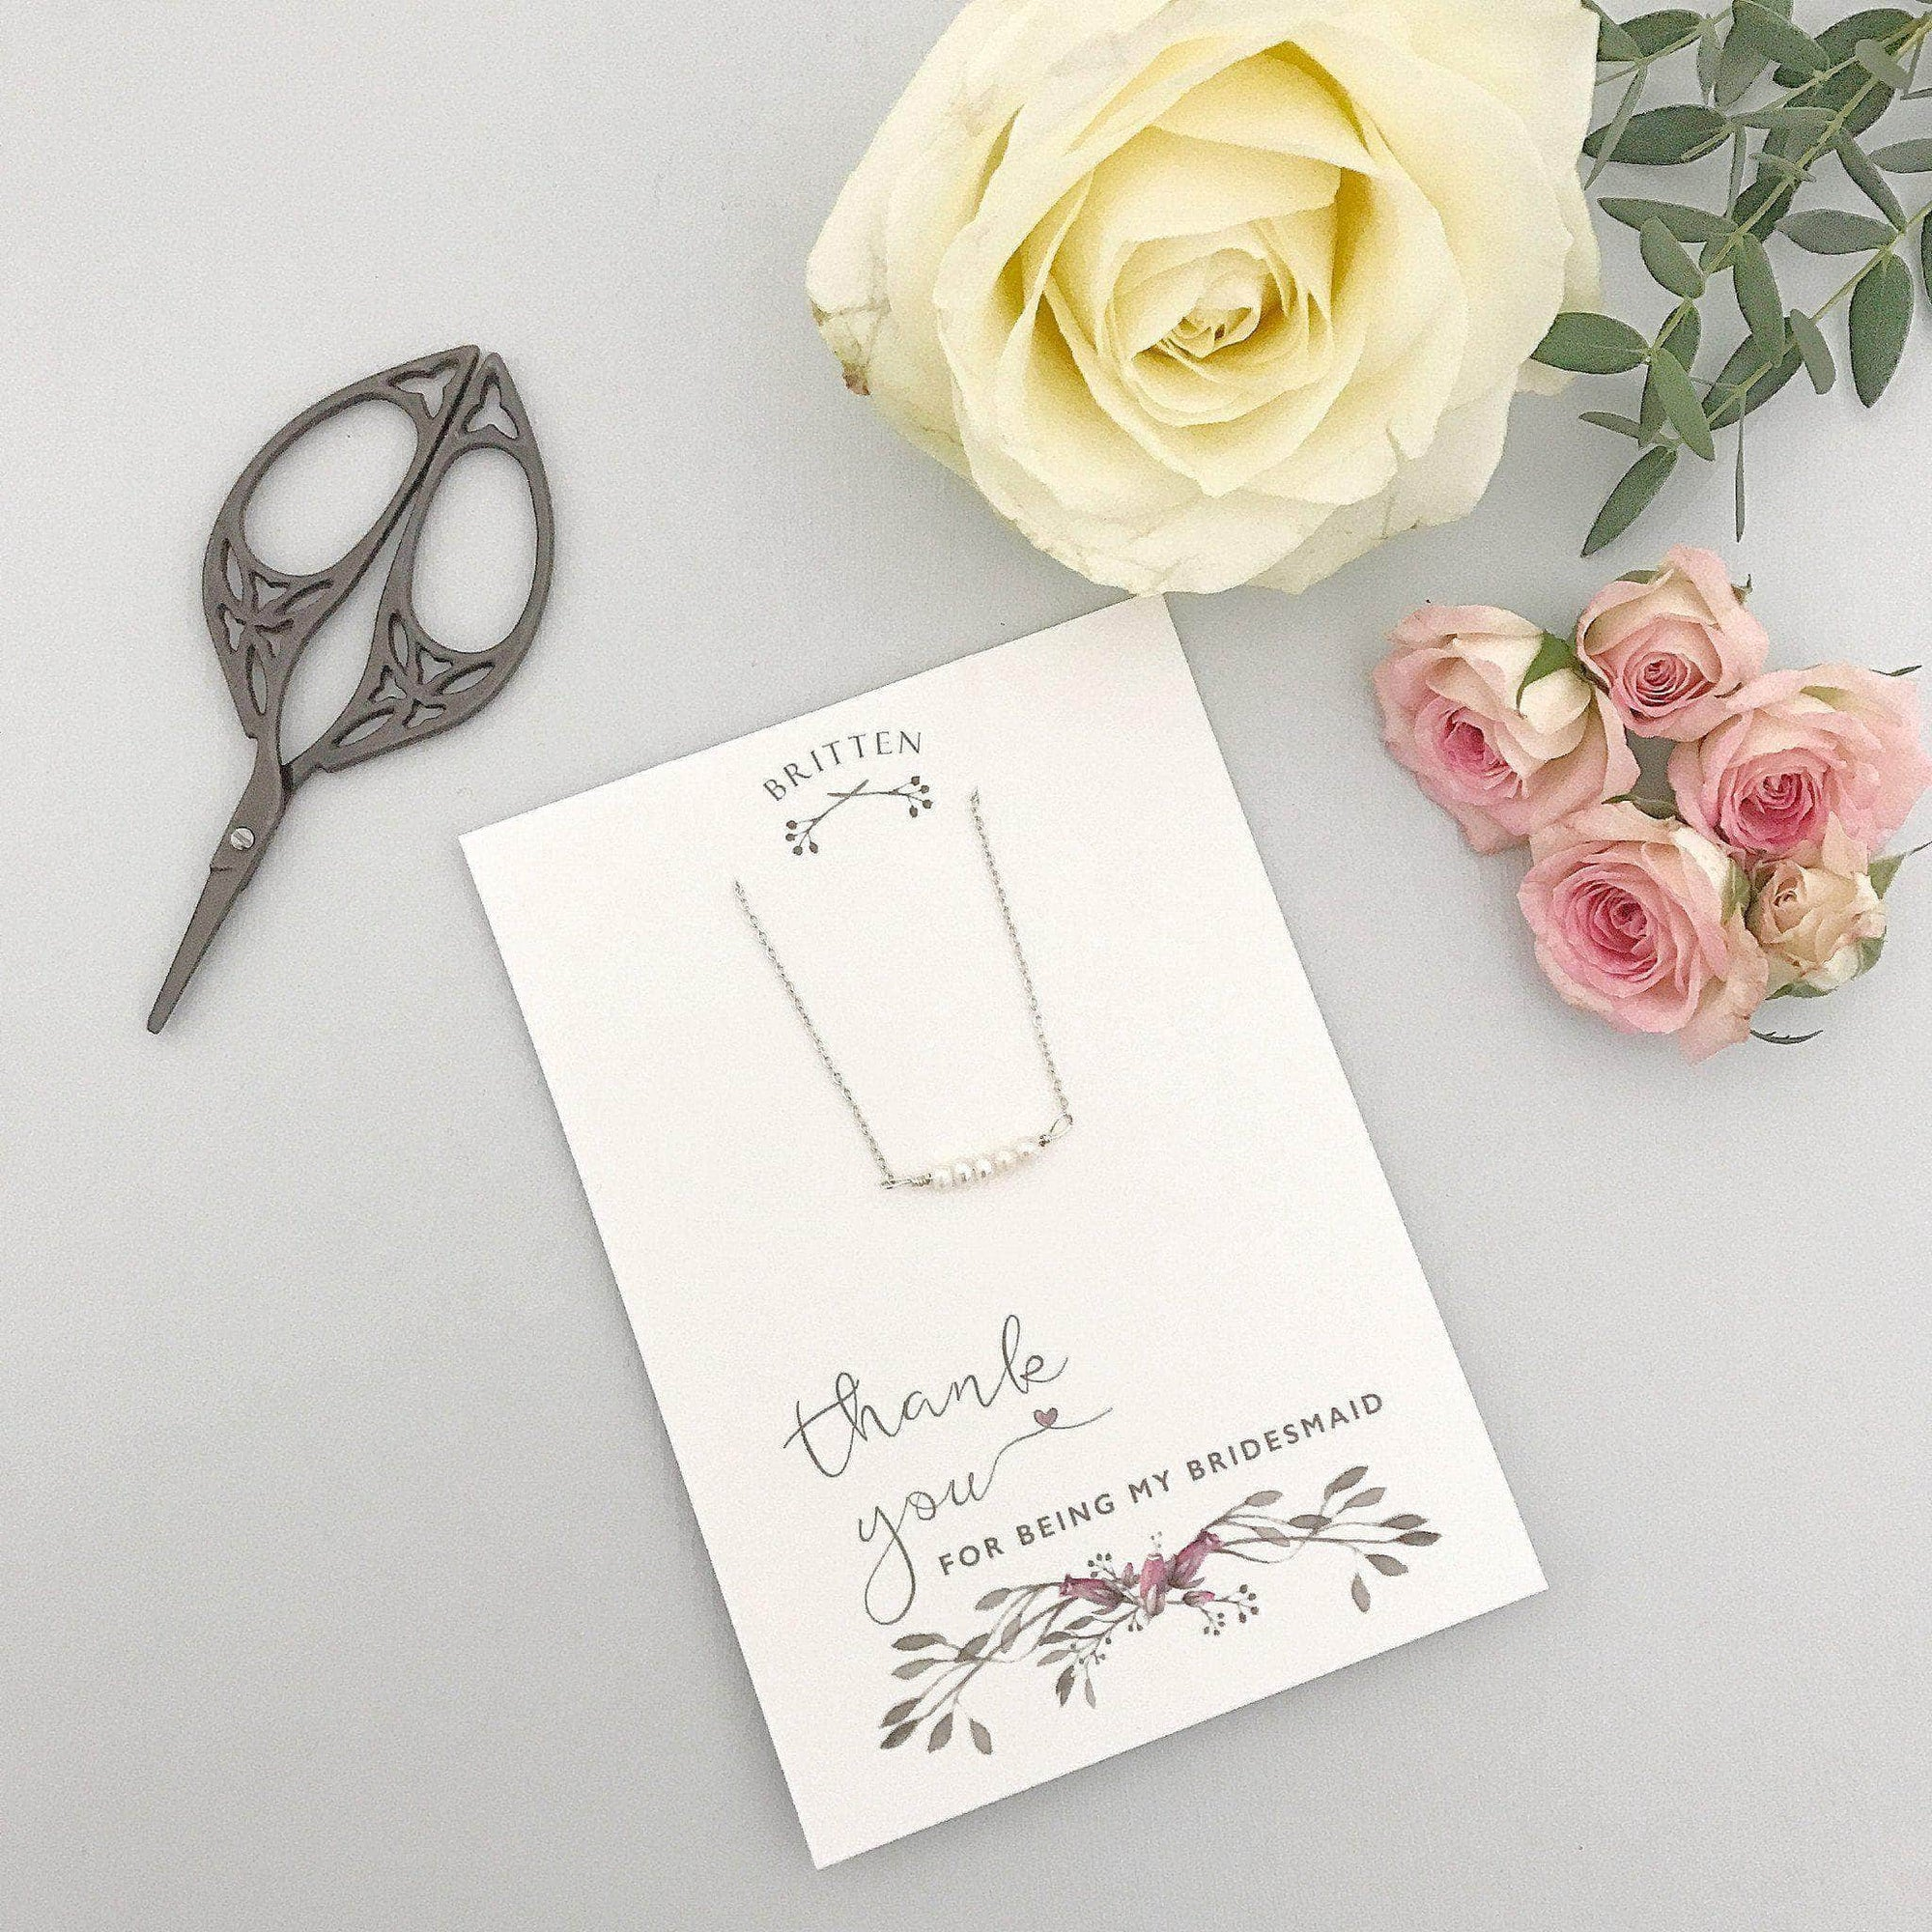 Bridesmaid Gift Silver Bridesmaid 'thank you' gift necklace - 'Freya' in silver